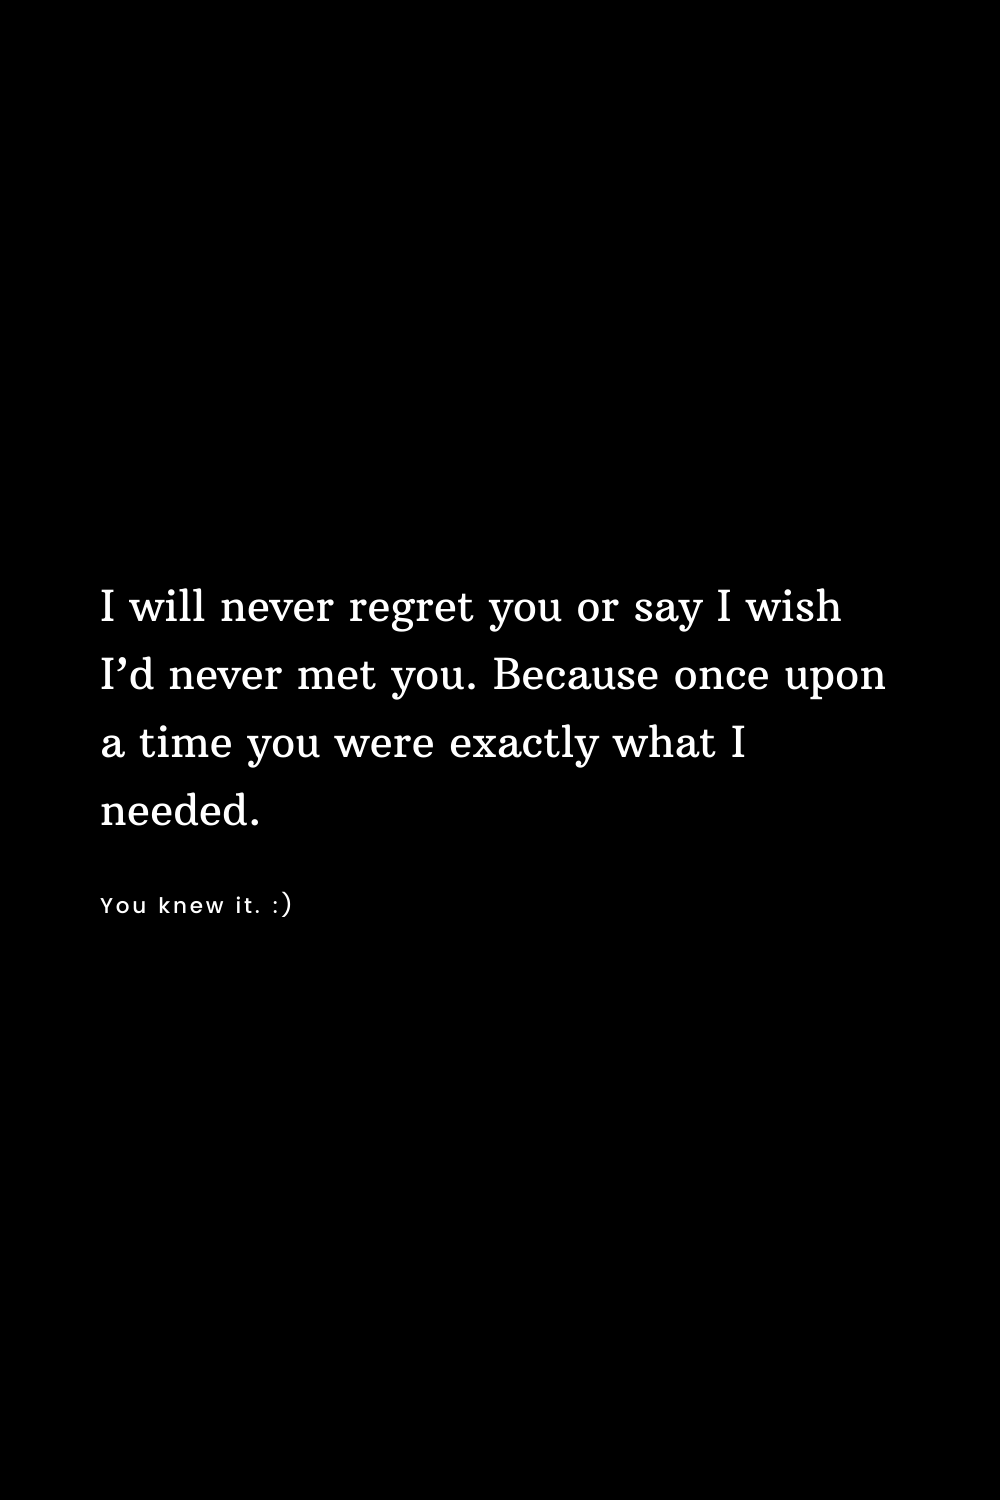 I will never regret you or say I wish I'd never met you. Because once upon a time you were exactly what I needed.